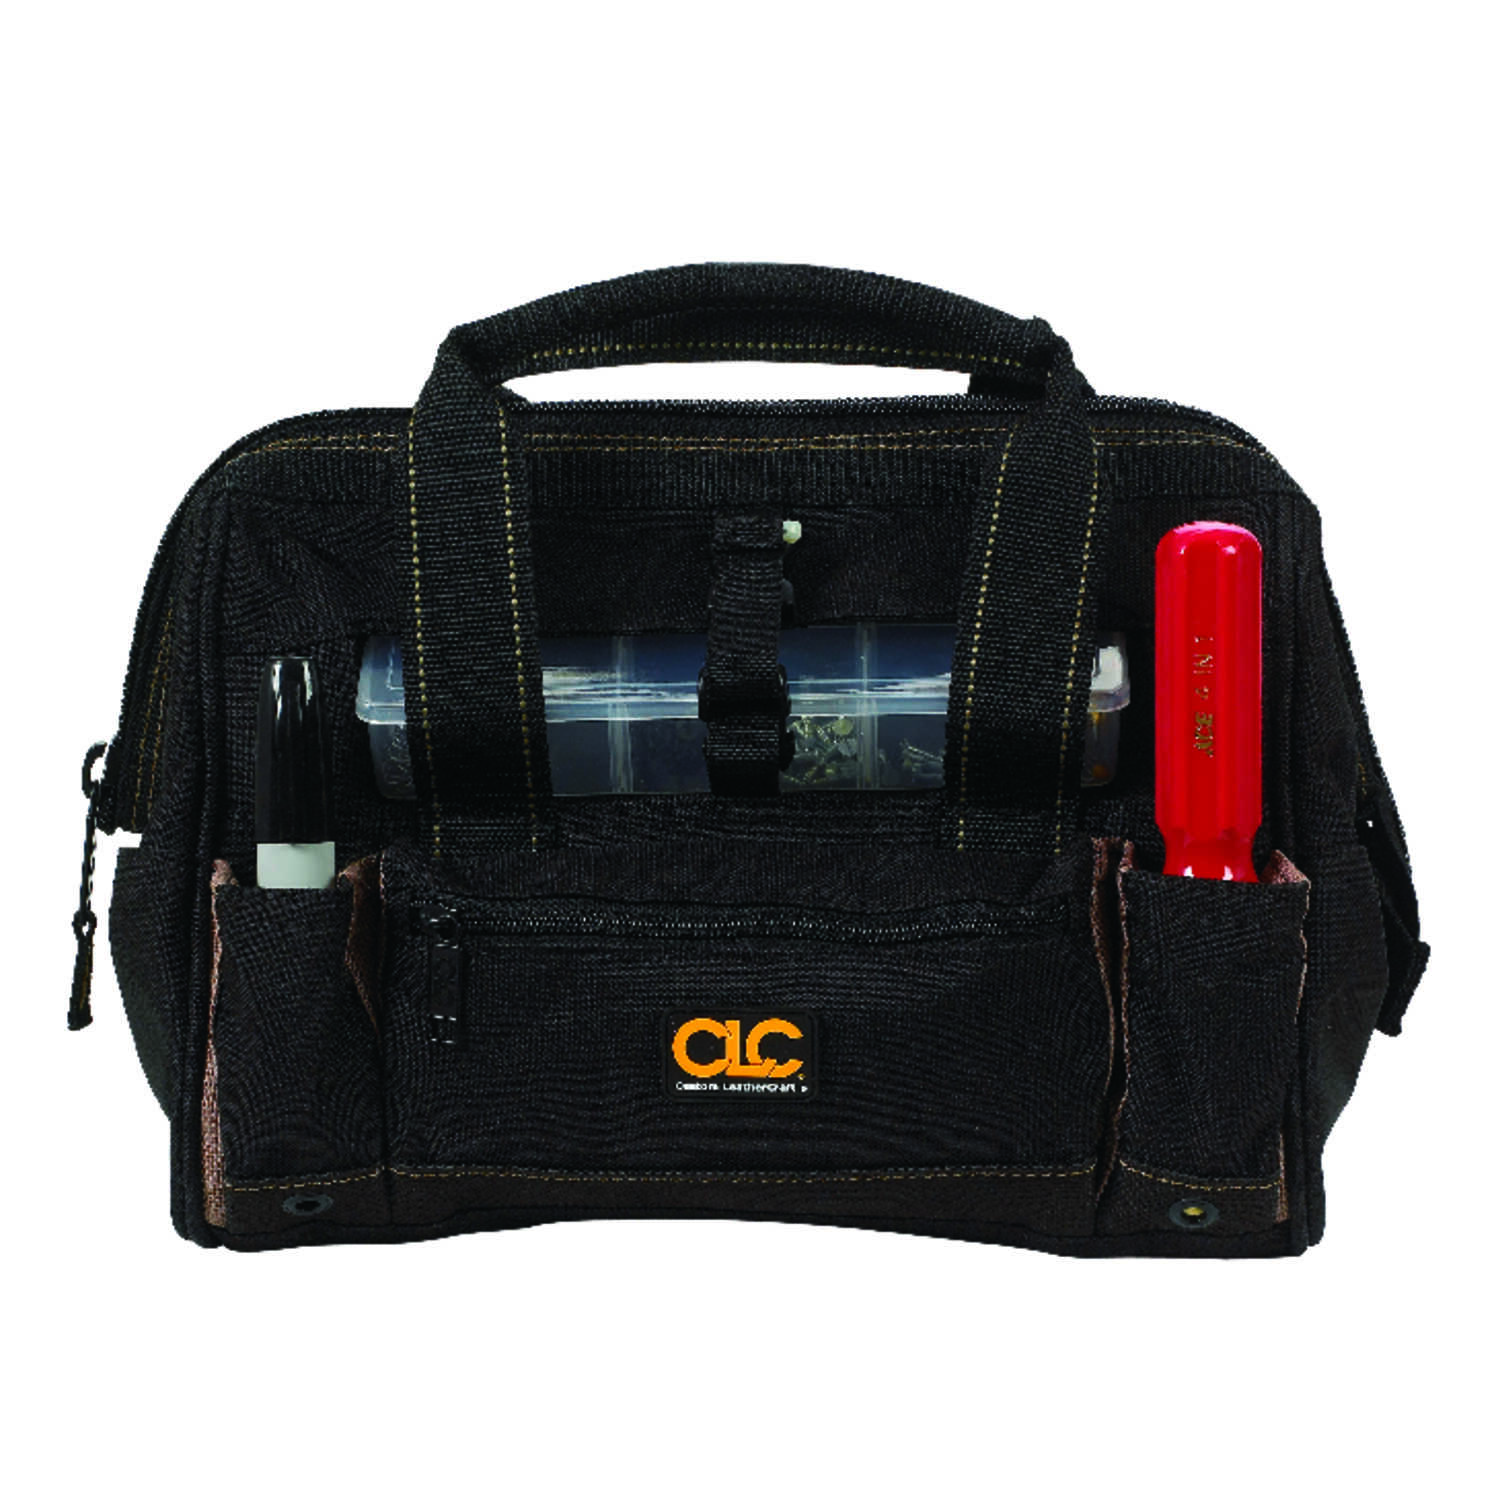 CLC Work Gear  4 in. W x 10.75 in. H Polyester  Tote Bag with Plastic Tray  Black/Tan  1 pc.